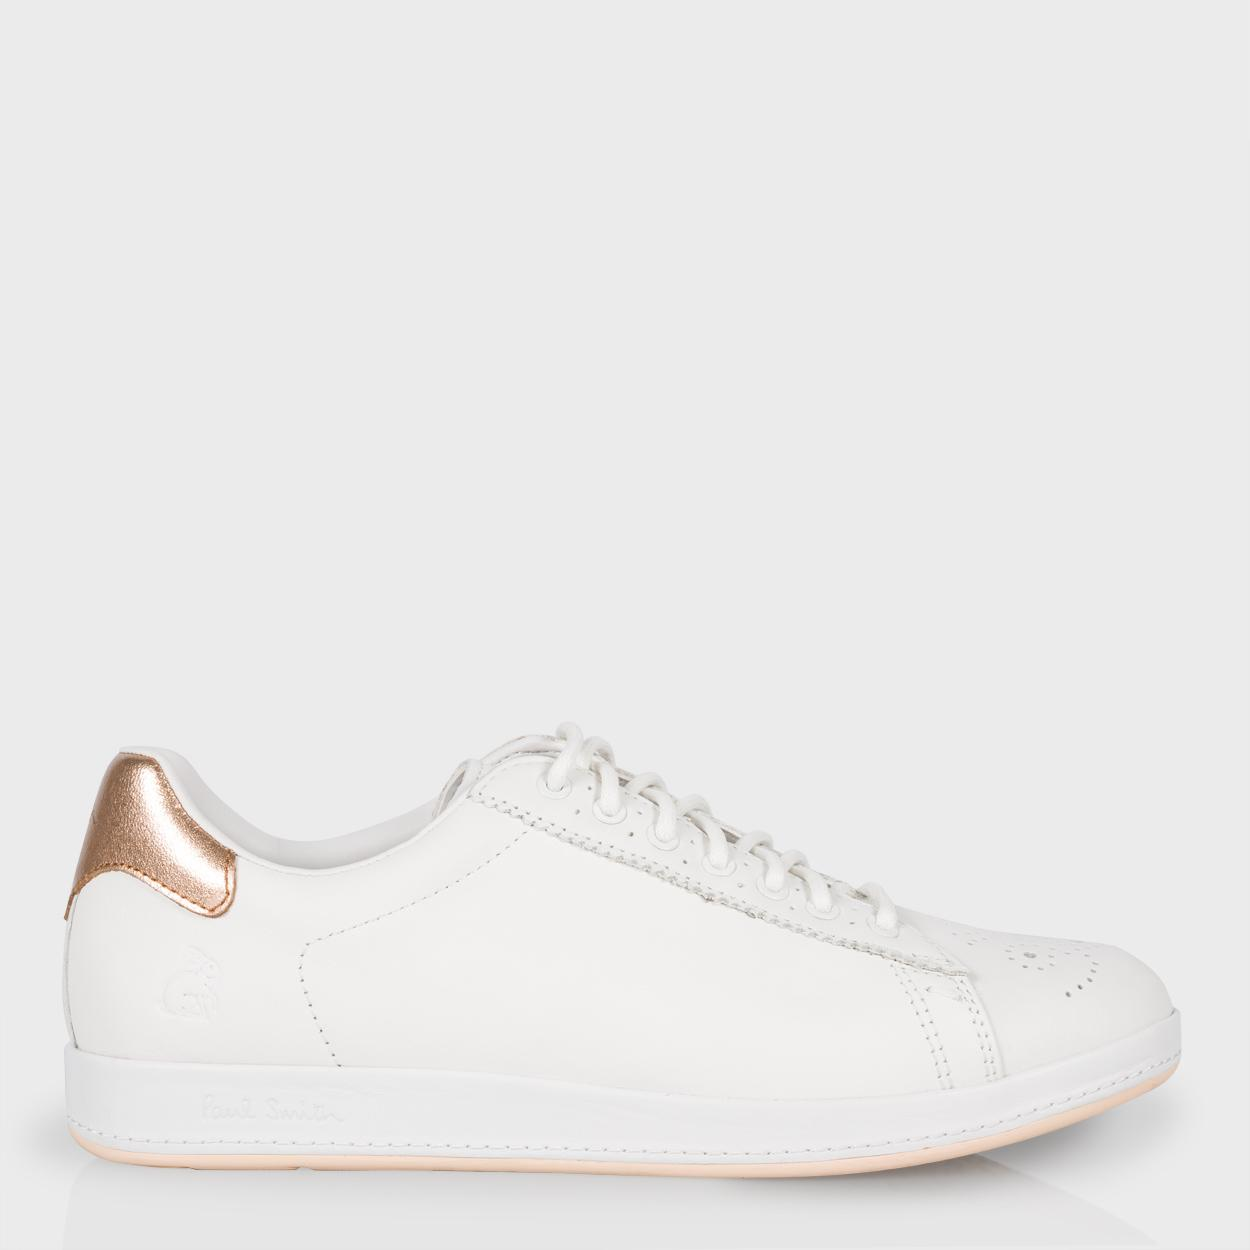 fee5ada2016 Paul Smith Women s White Leather  Rabbit  Trainers With Gold Trims